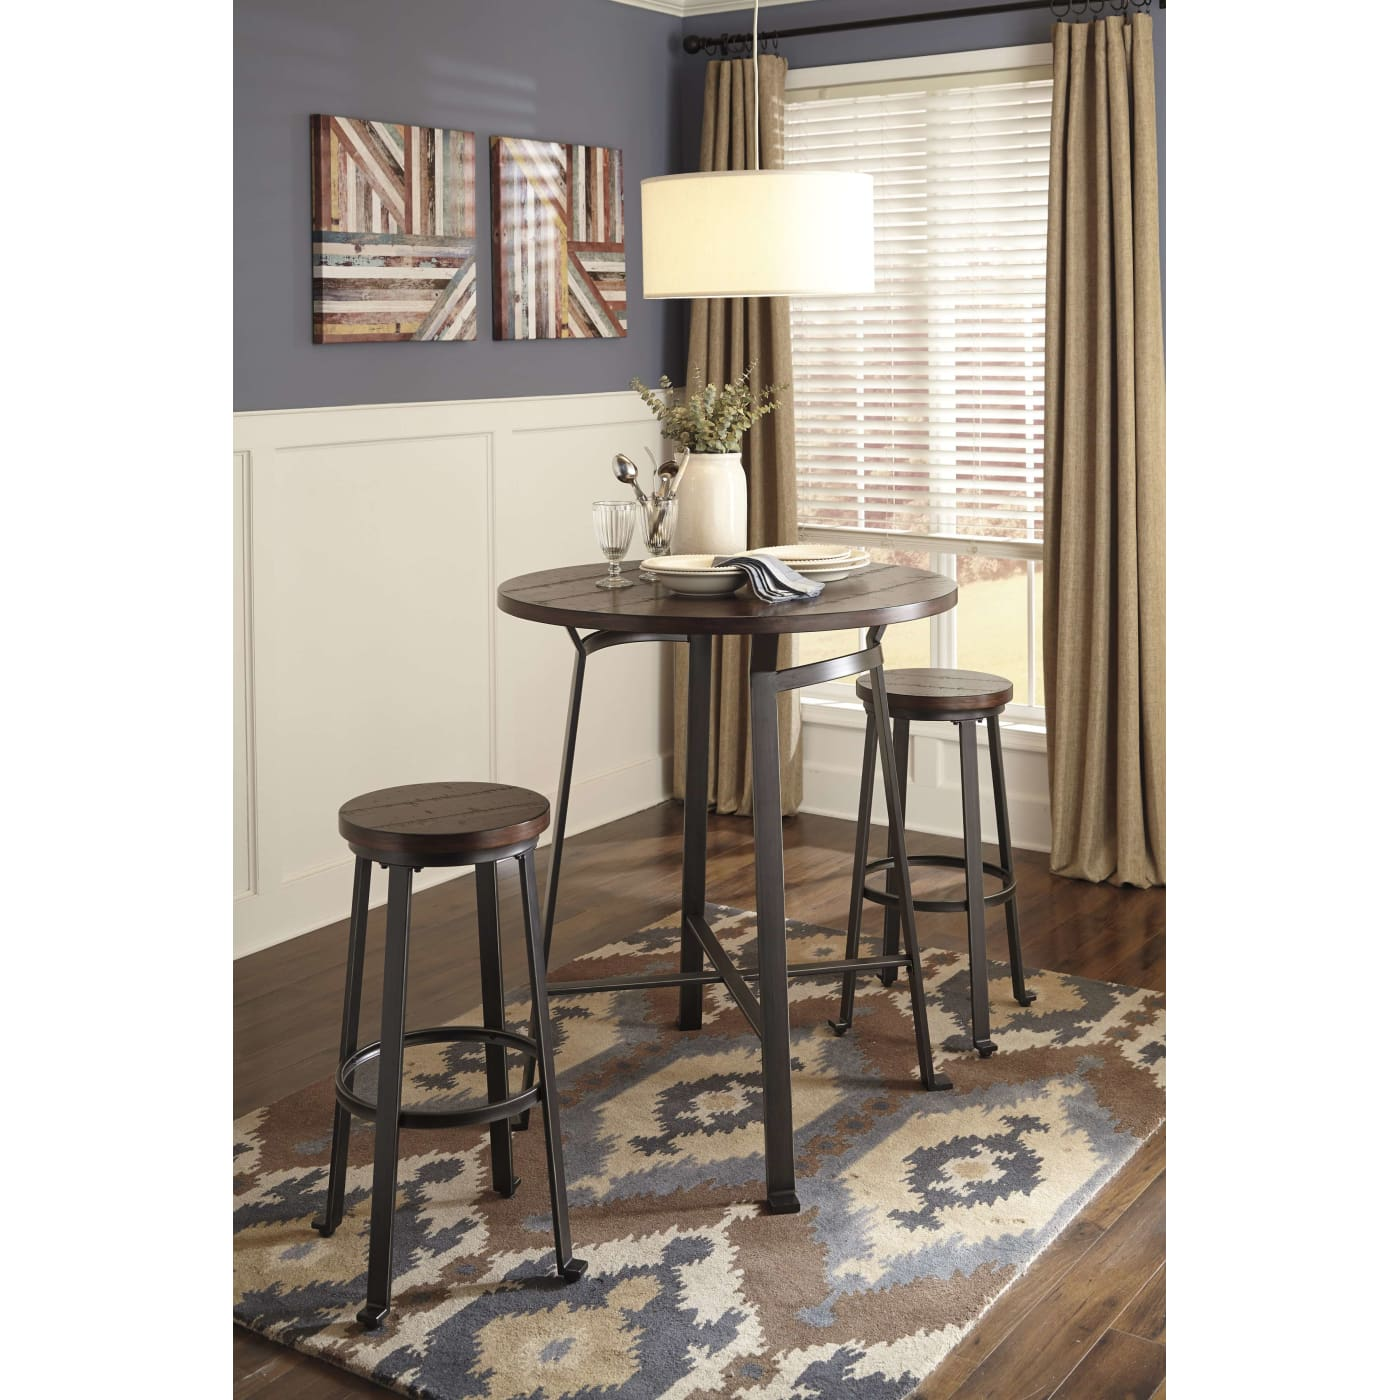 Signature Design By Ashley Challiman Rustic Brown 3 Piece